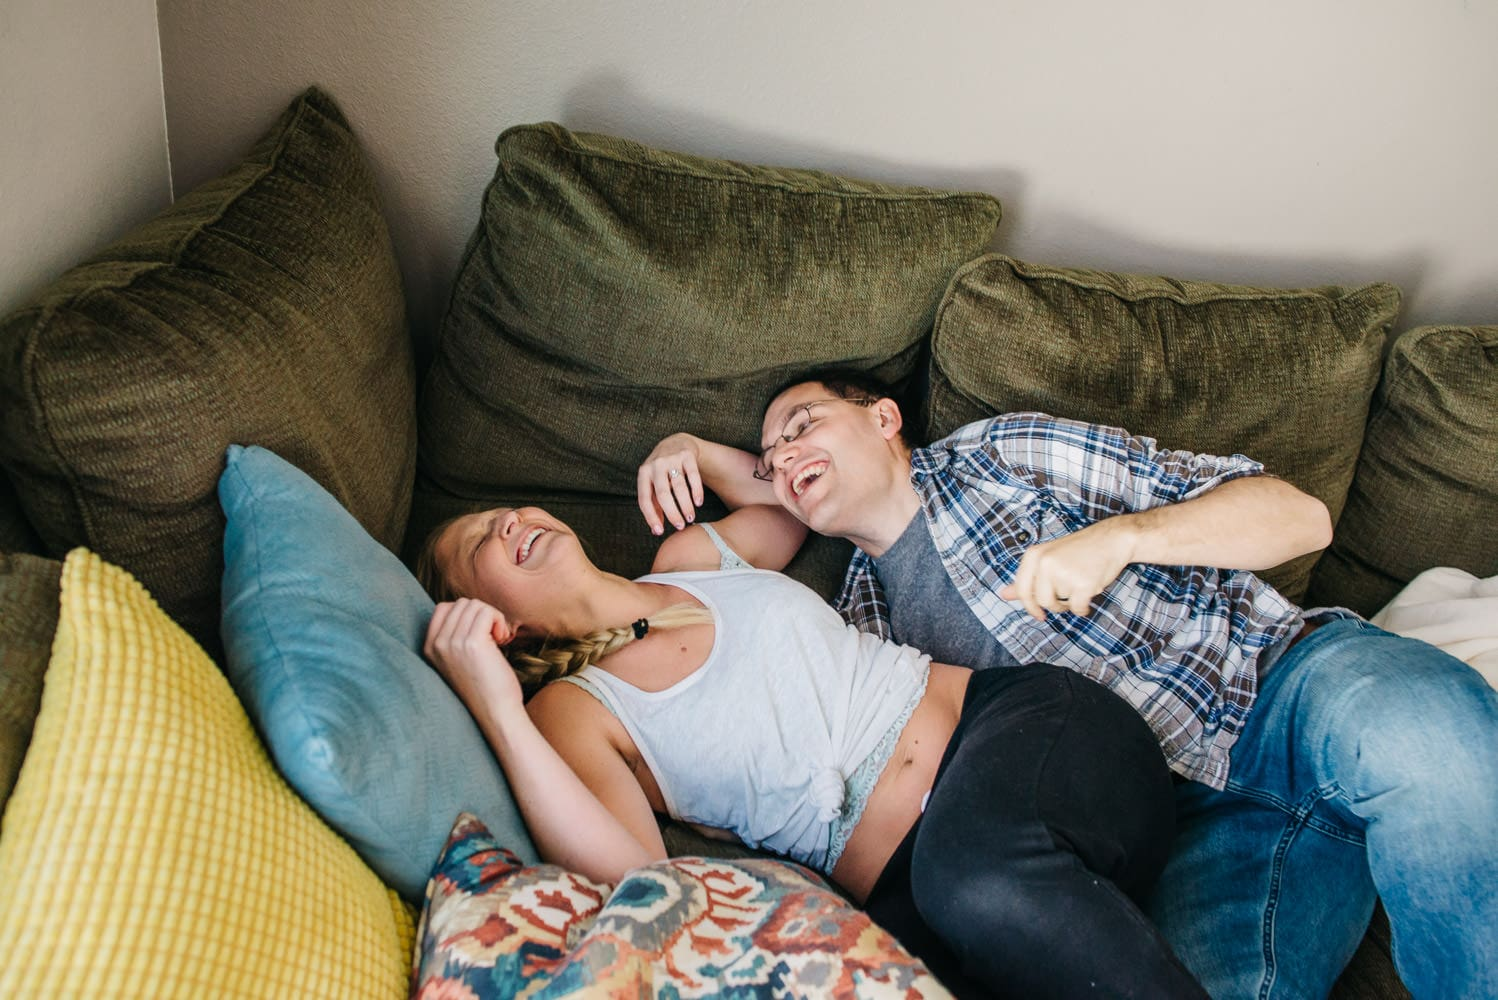 Couple laughing snuggling on couch